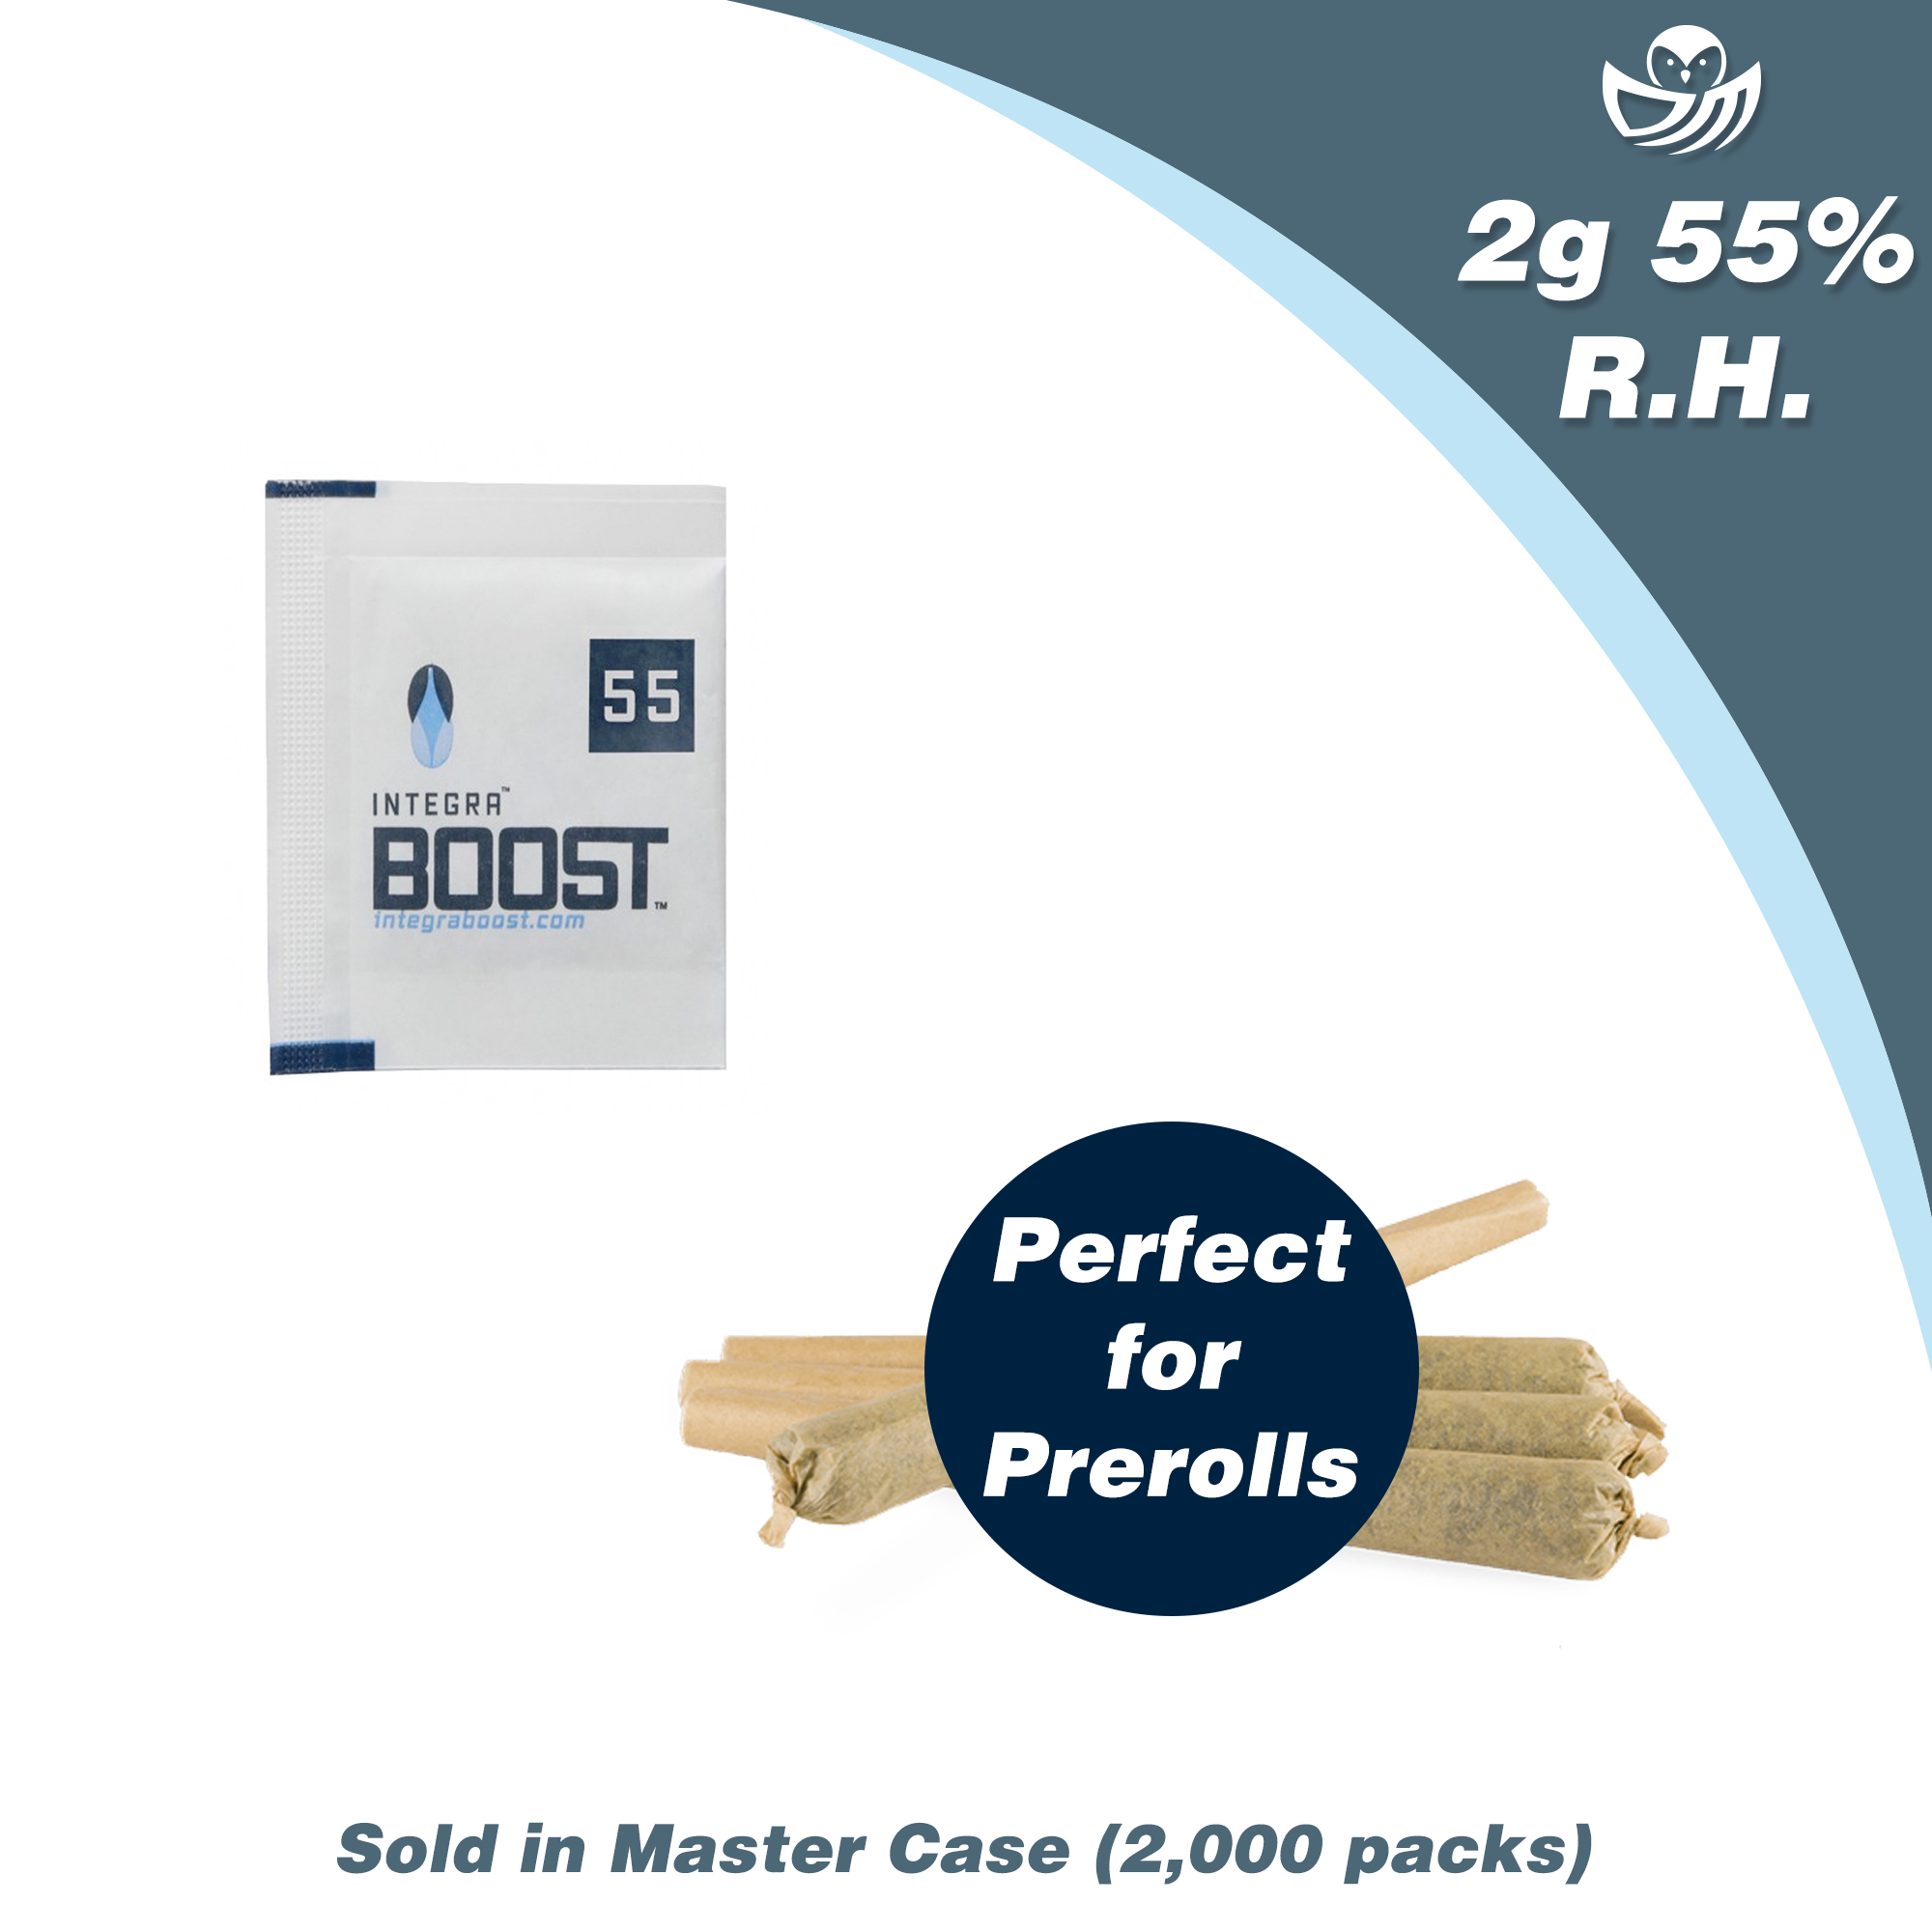 2g Integra Boost 55% RH - Master Case (2000 packs)